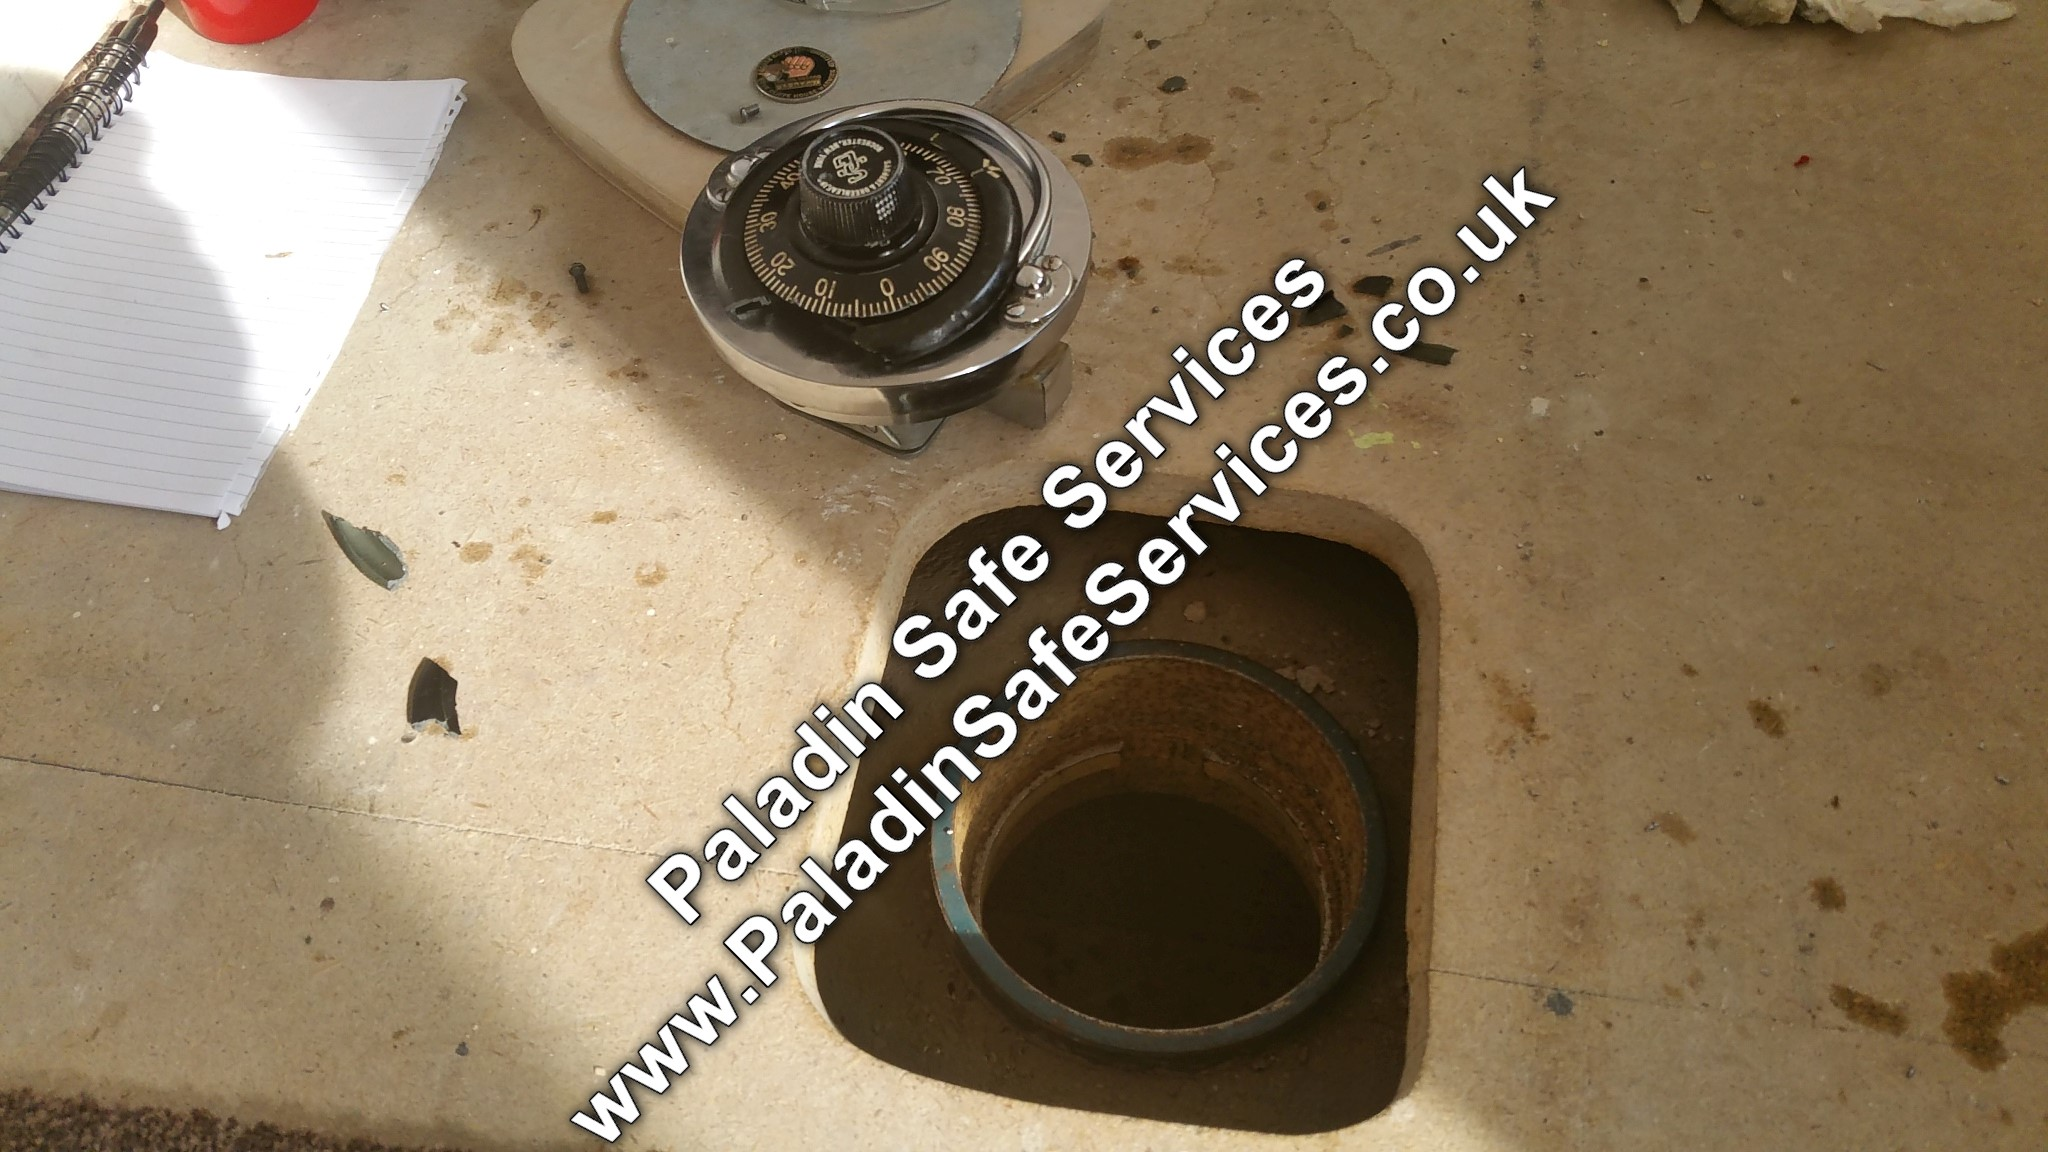 Secure Safes (Coventry) Combination